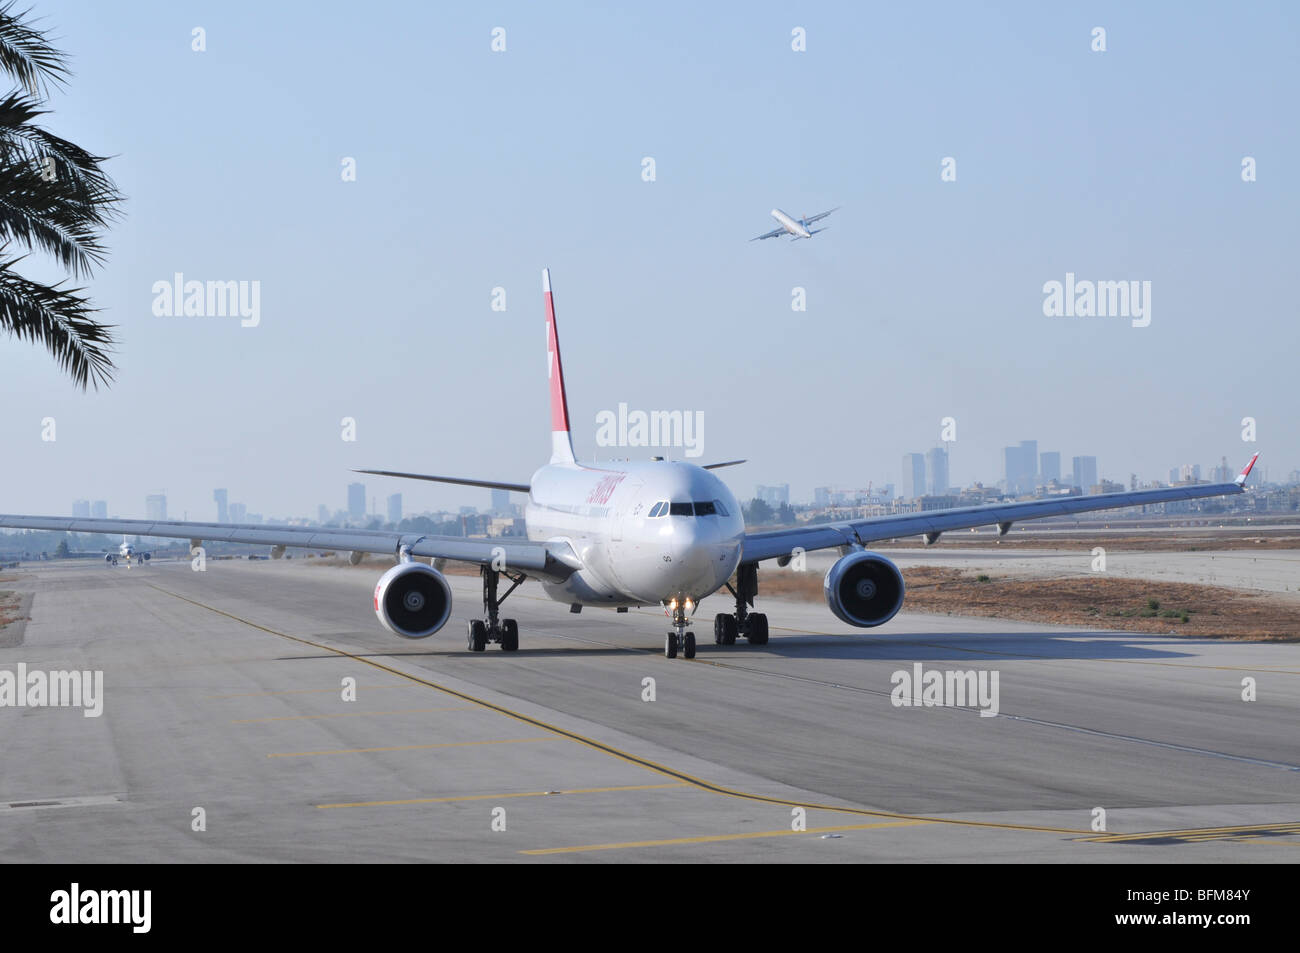 Israel, Ben-Gurion international Airport SWISS passenger jet ready for takeoff - Stock Image